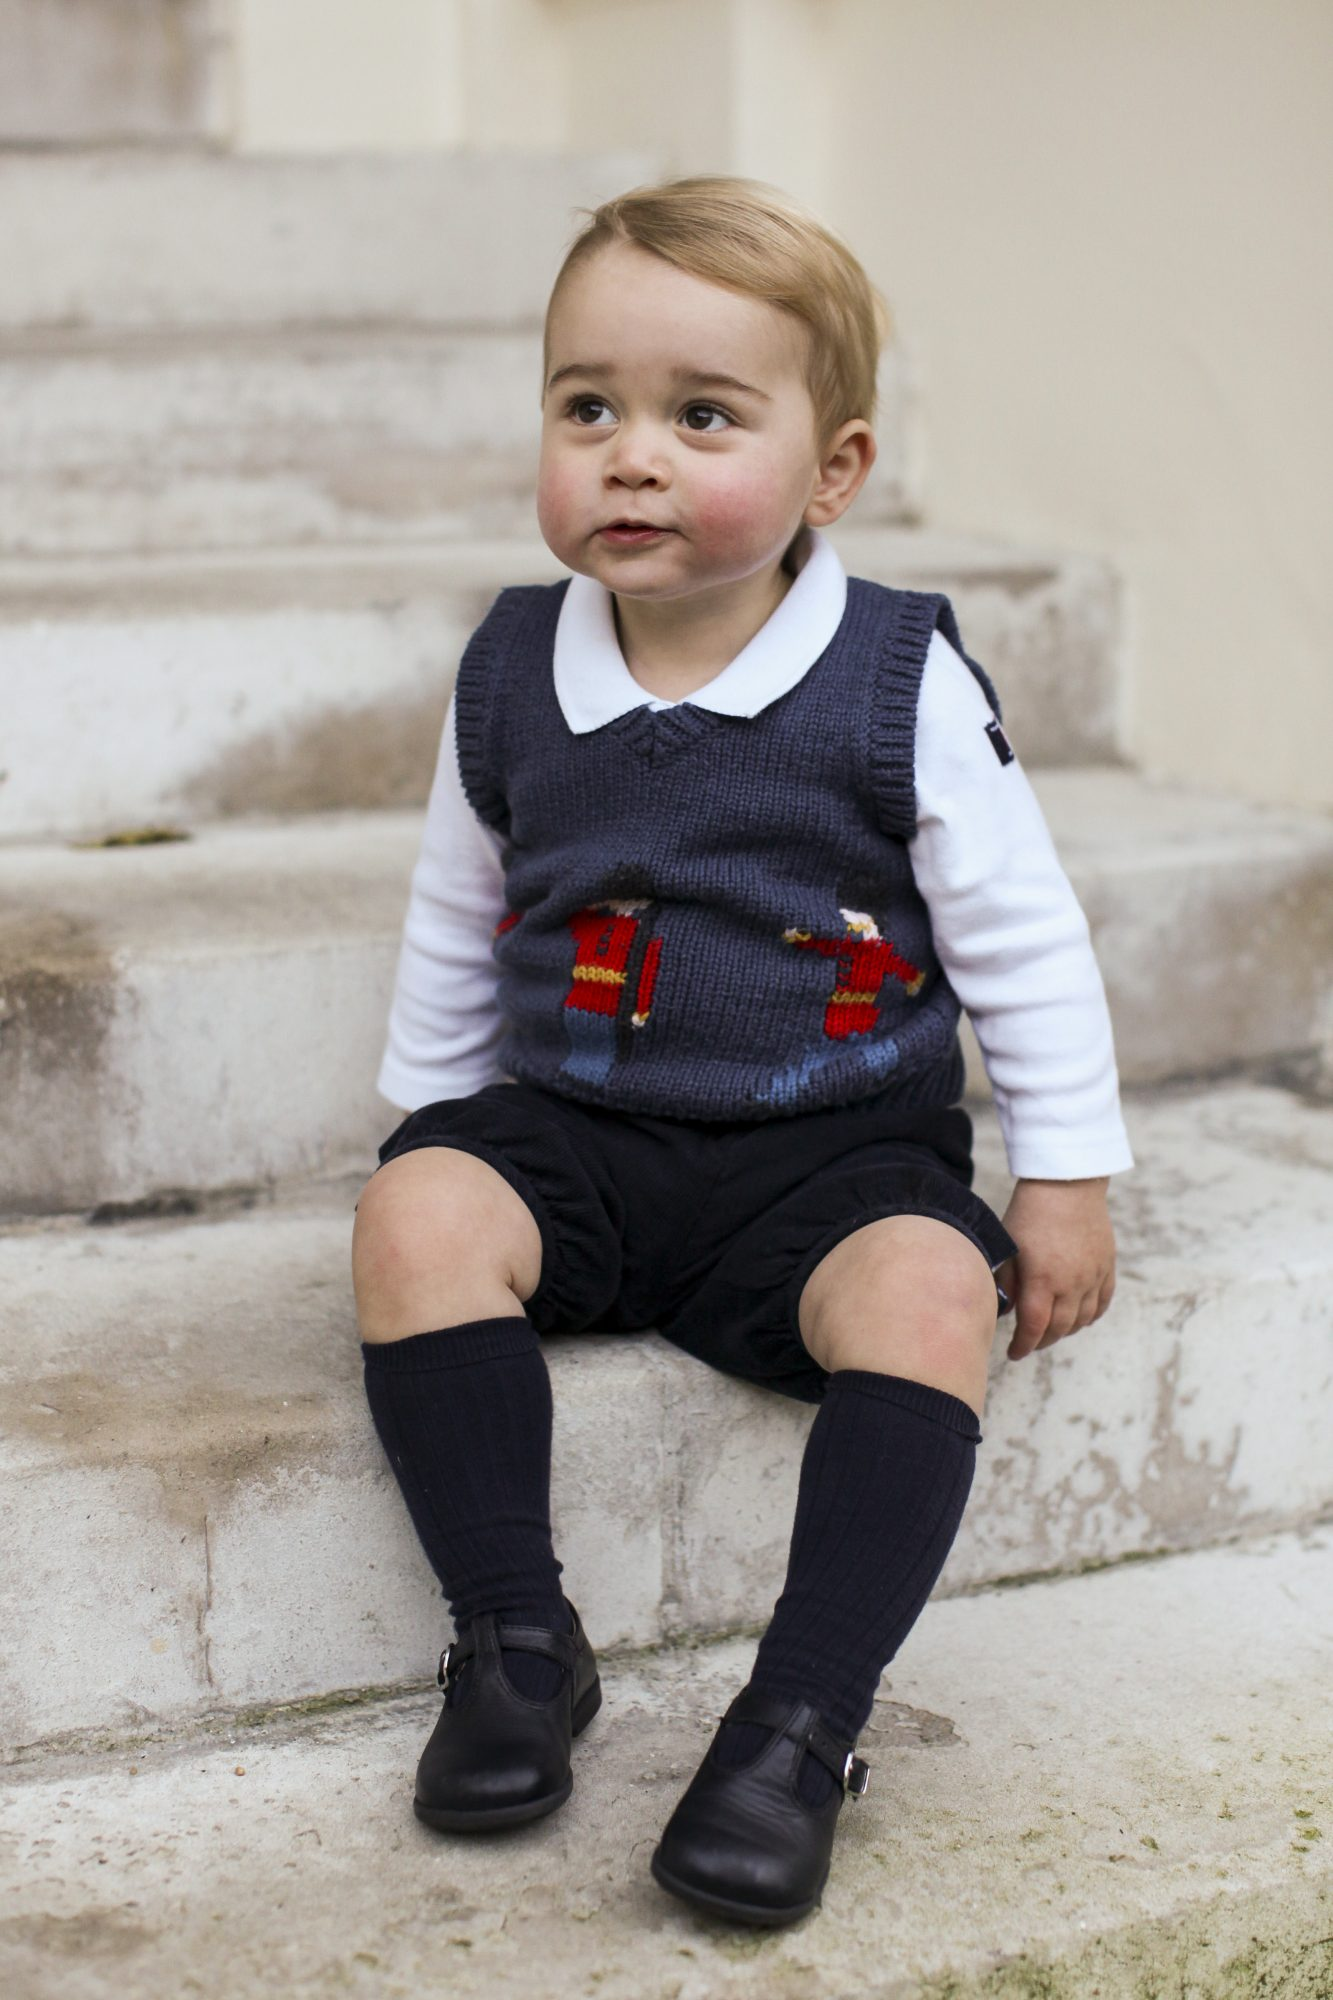 Our Prince Charming! 15 Adorable Photos of George That Smirk